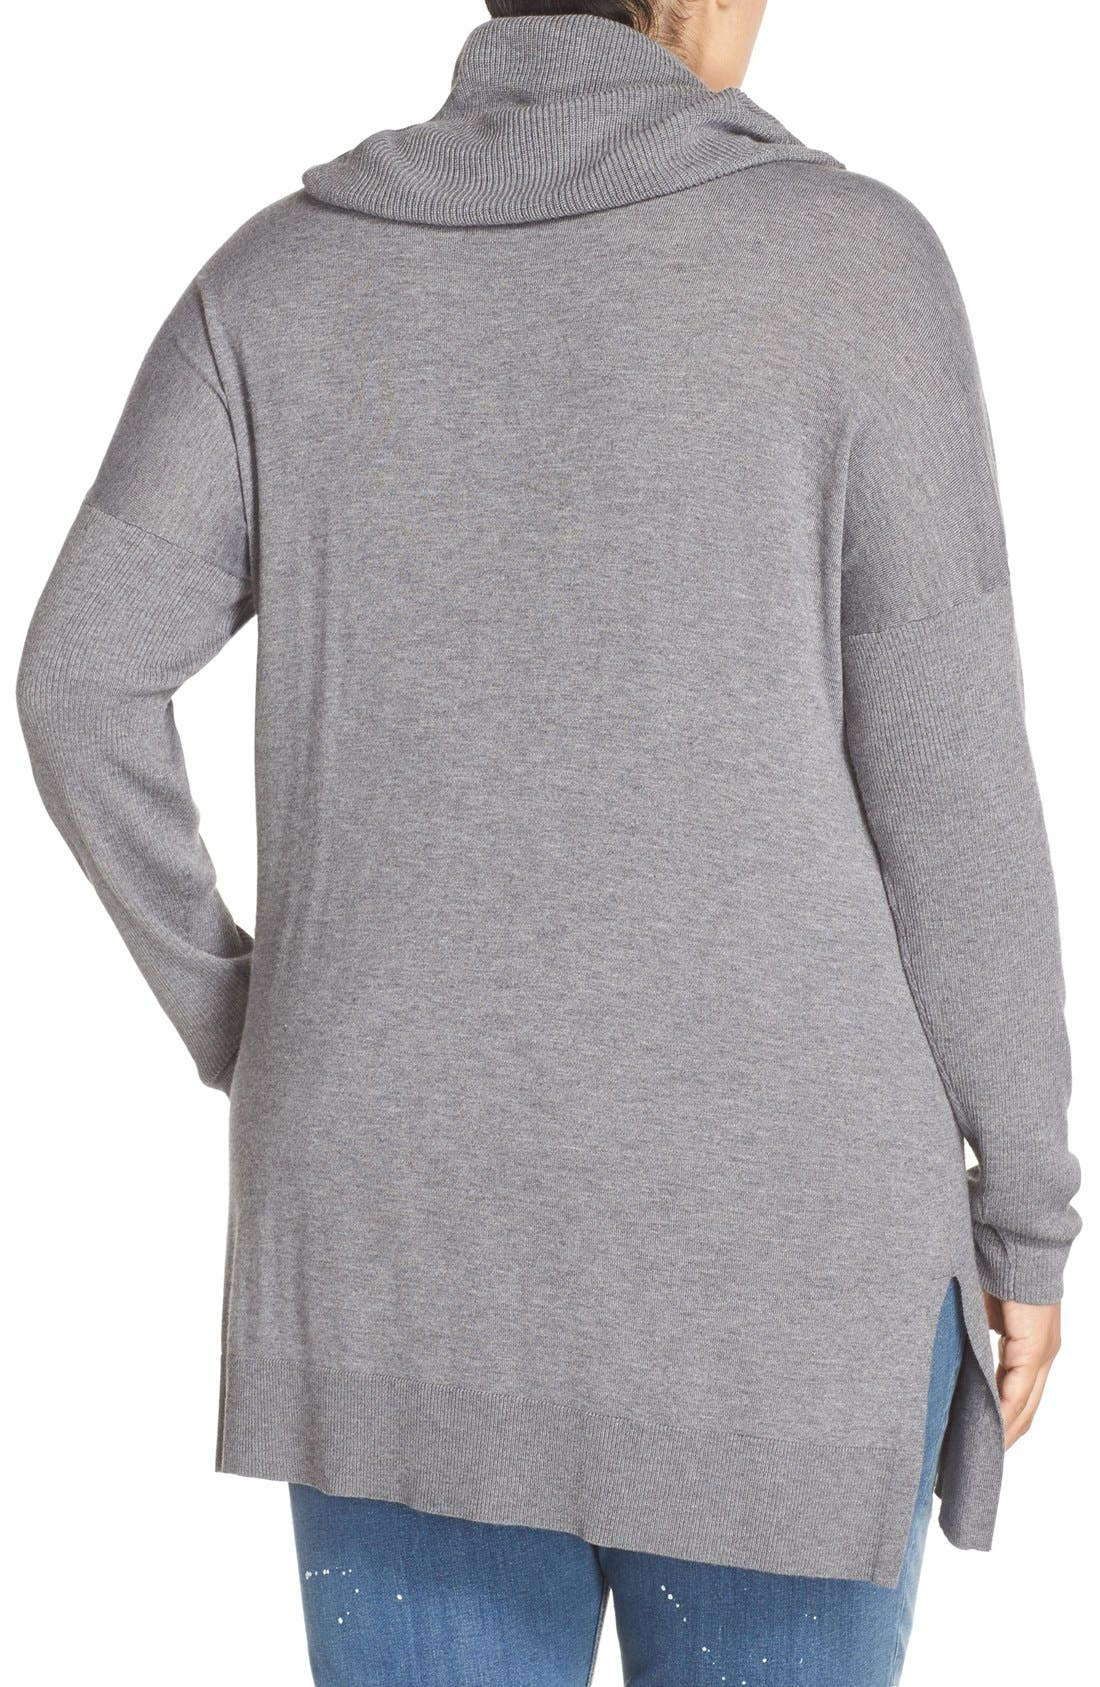 Cowl Neck Tunic Sweater,                             Alternate thumbnail 12, color,